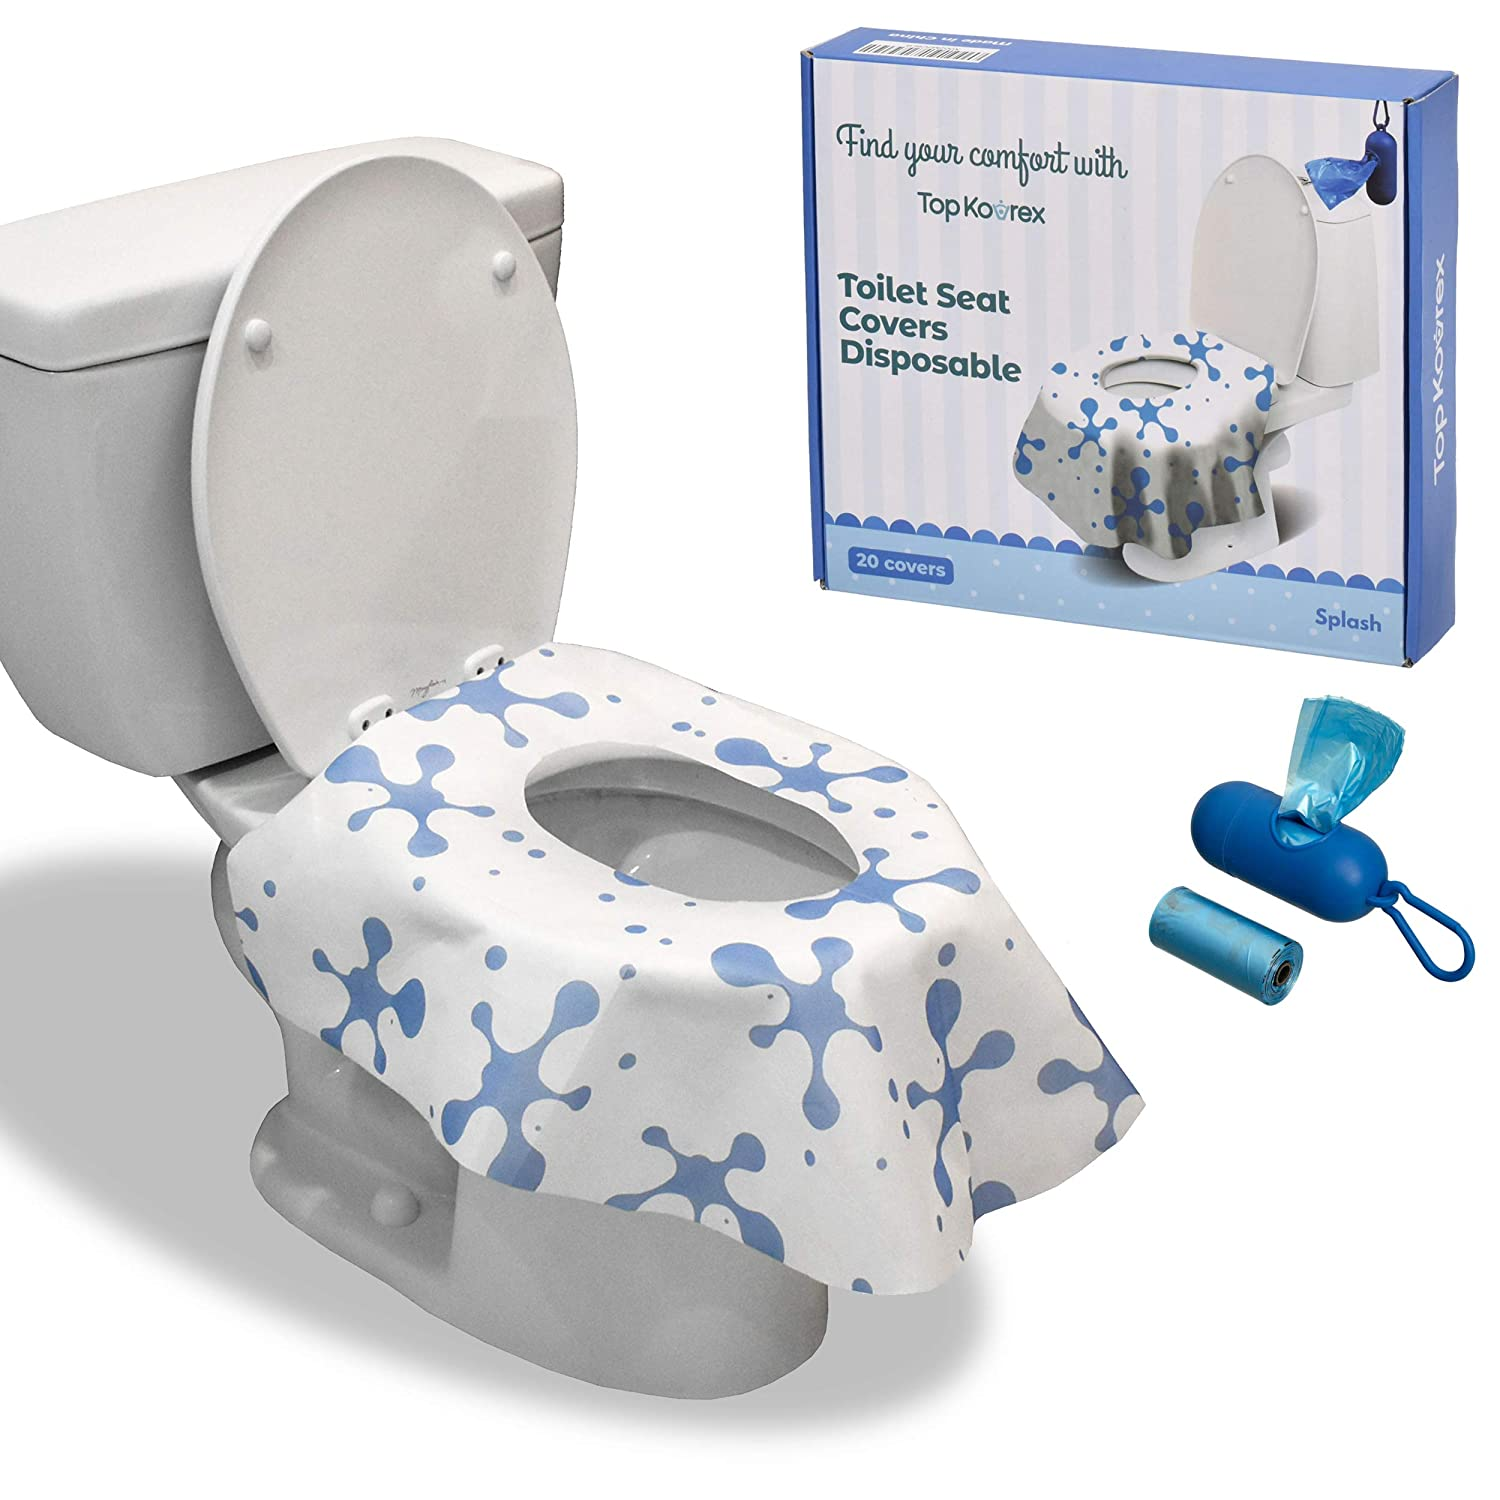 Toilet Seat Covers Disposable - Be super welcome San Diego Mall Soft Non-Woven Wat Extra Large